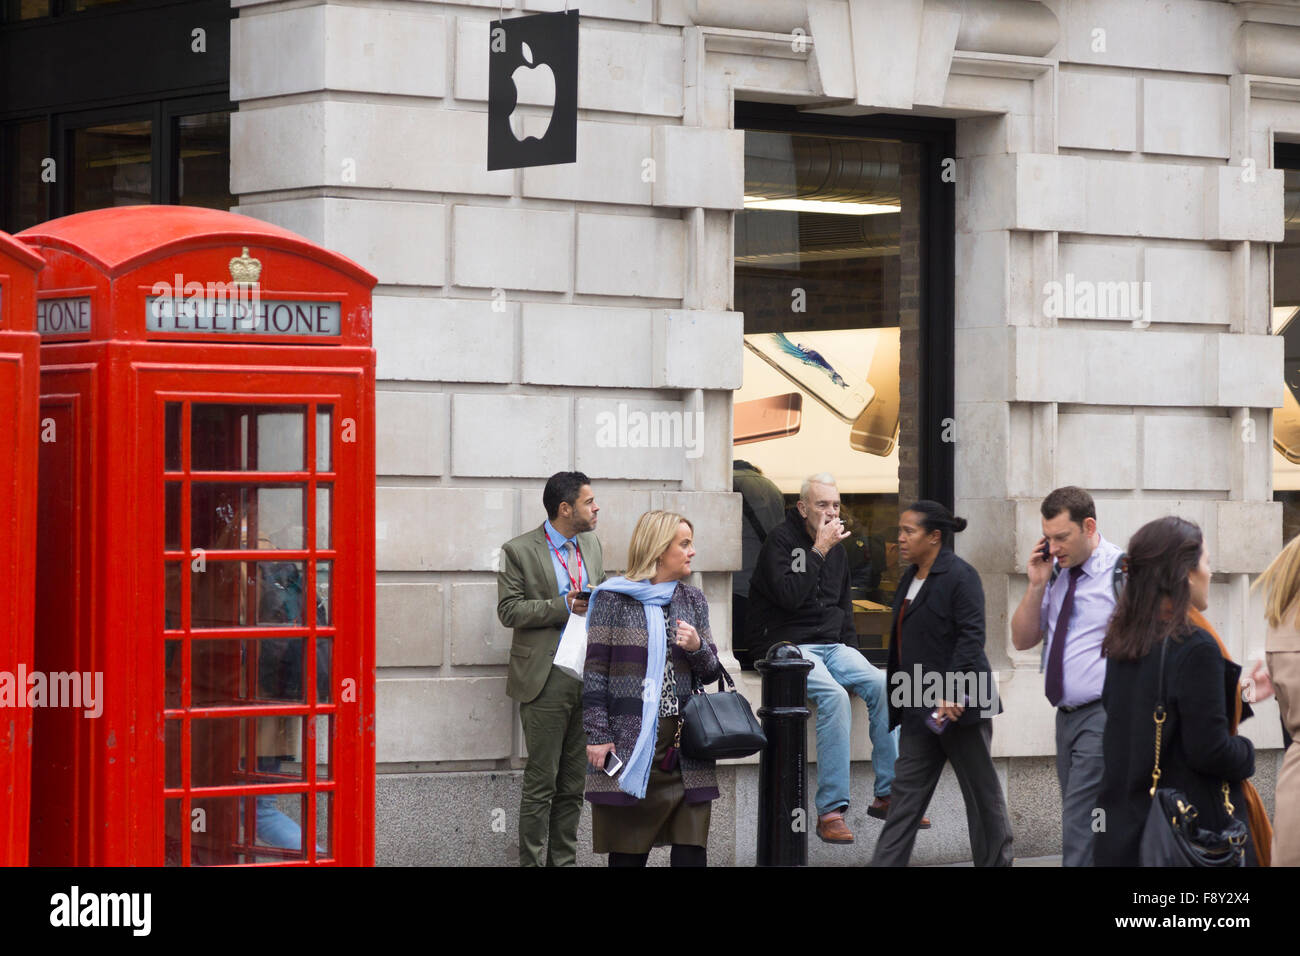 A man sitting smoking and a man eating lunch outside an Apple Store, passed by people at lunch time in London - Stock Image